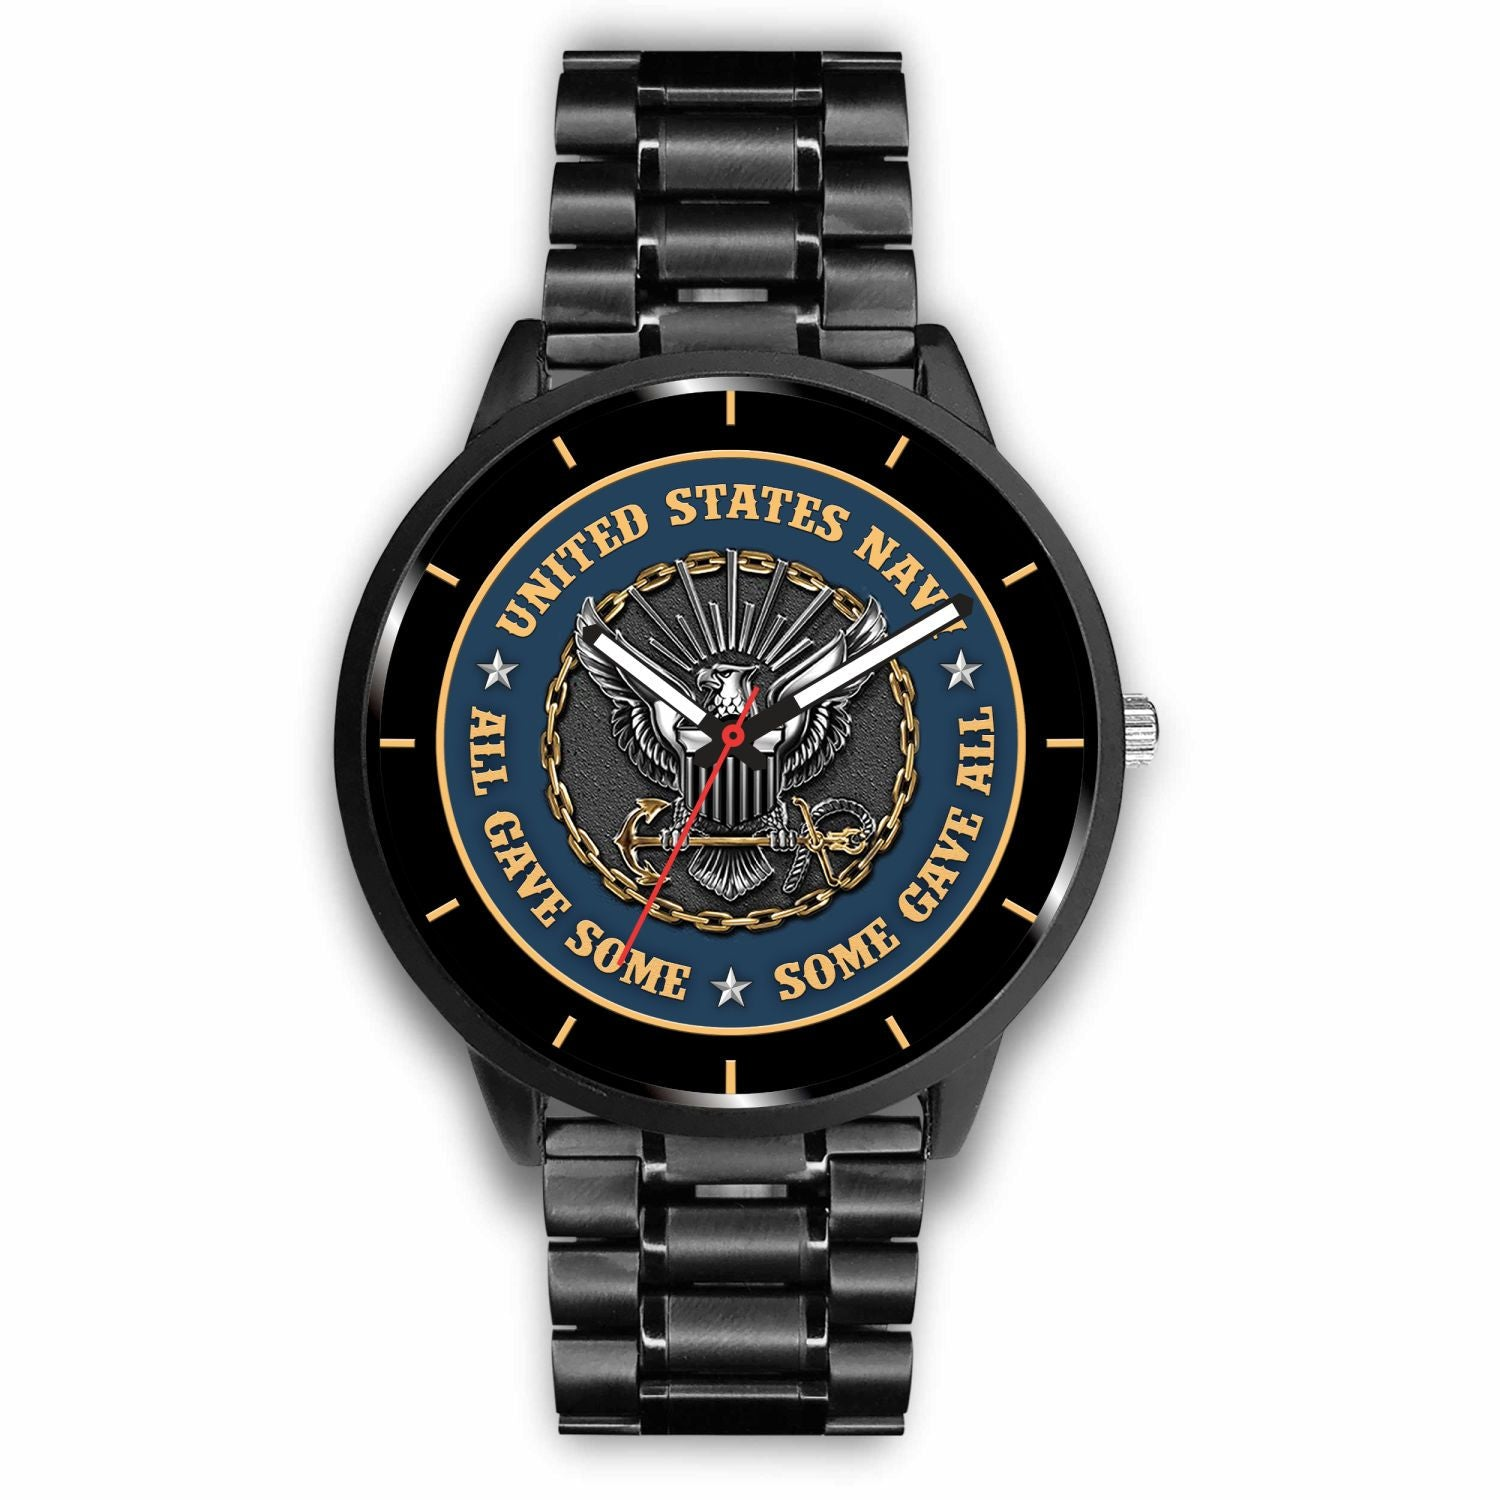 Buy UNITED STATES NAVY, ALL GAVE SOME SOME GAVE ALL VETERAN WATCH - Familyloves hoodies t-shirt jacket mug cheapest free shipping 50% off